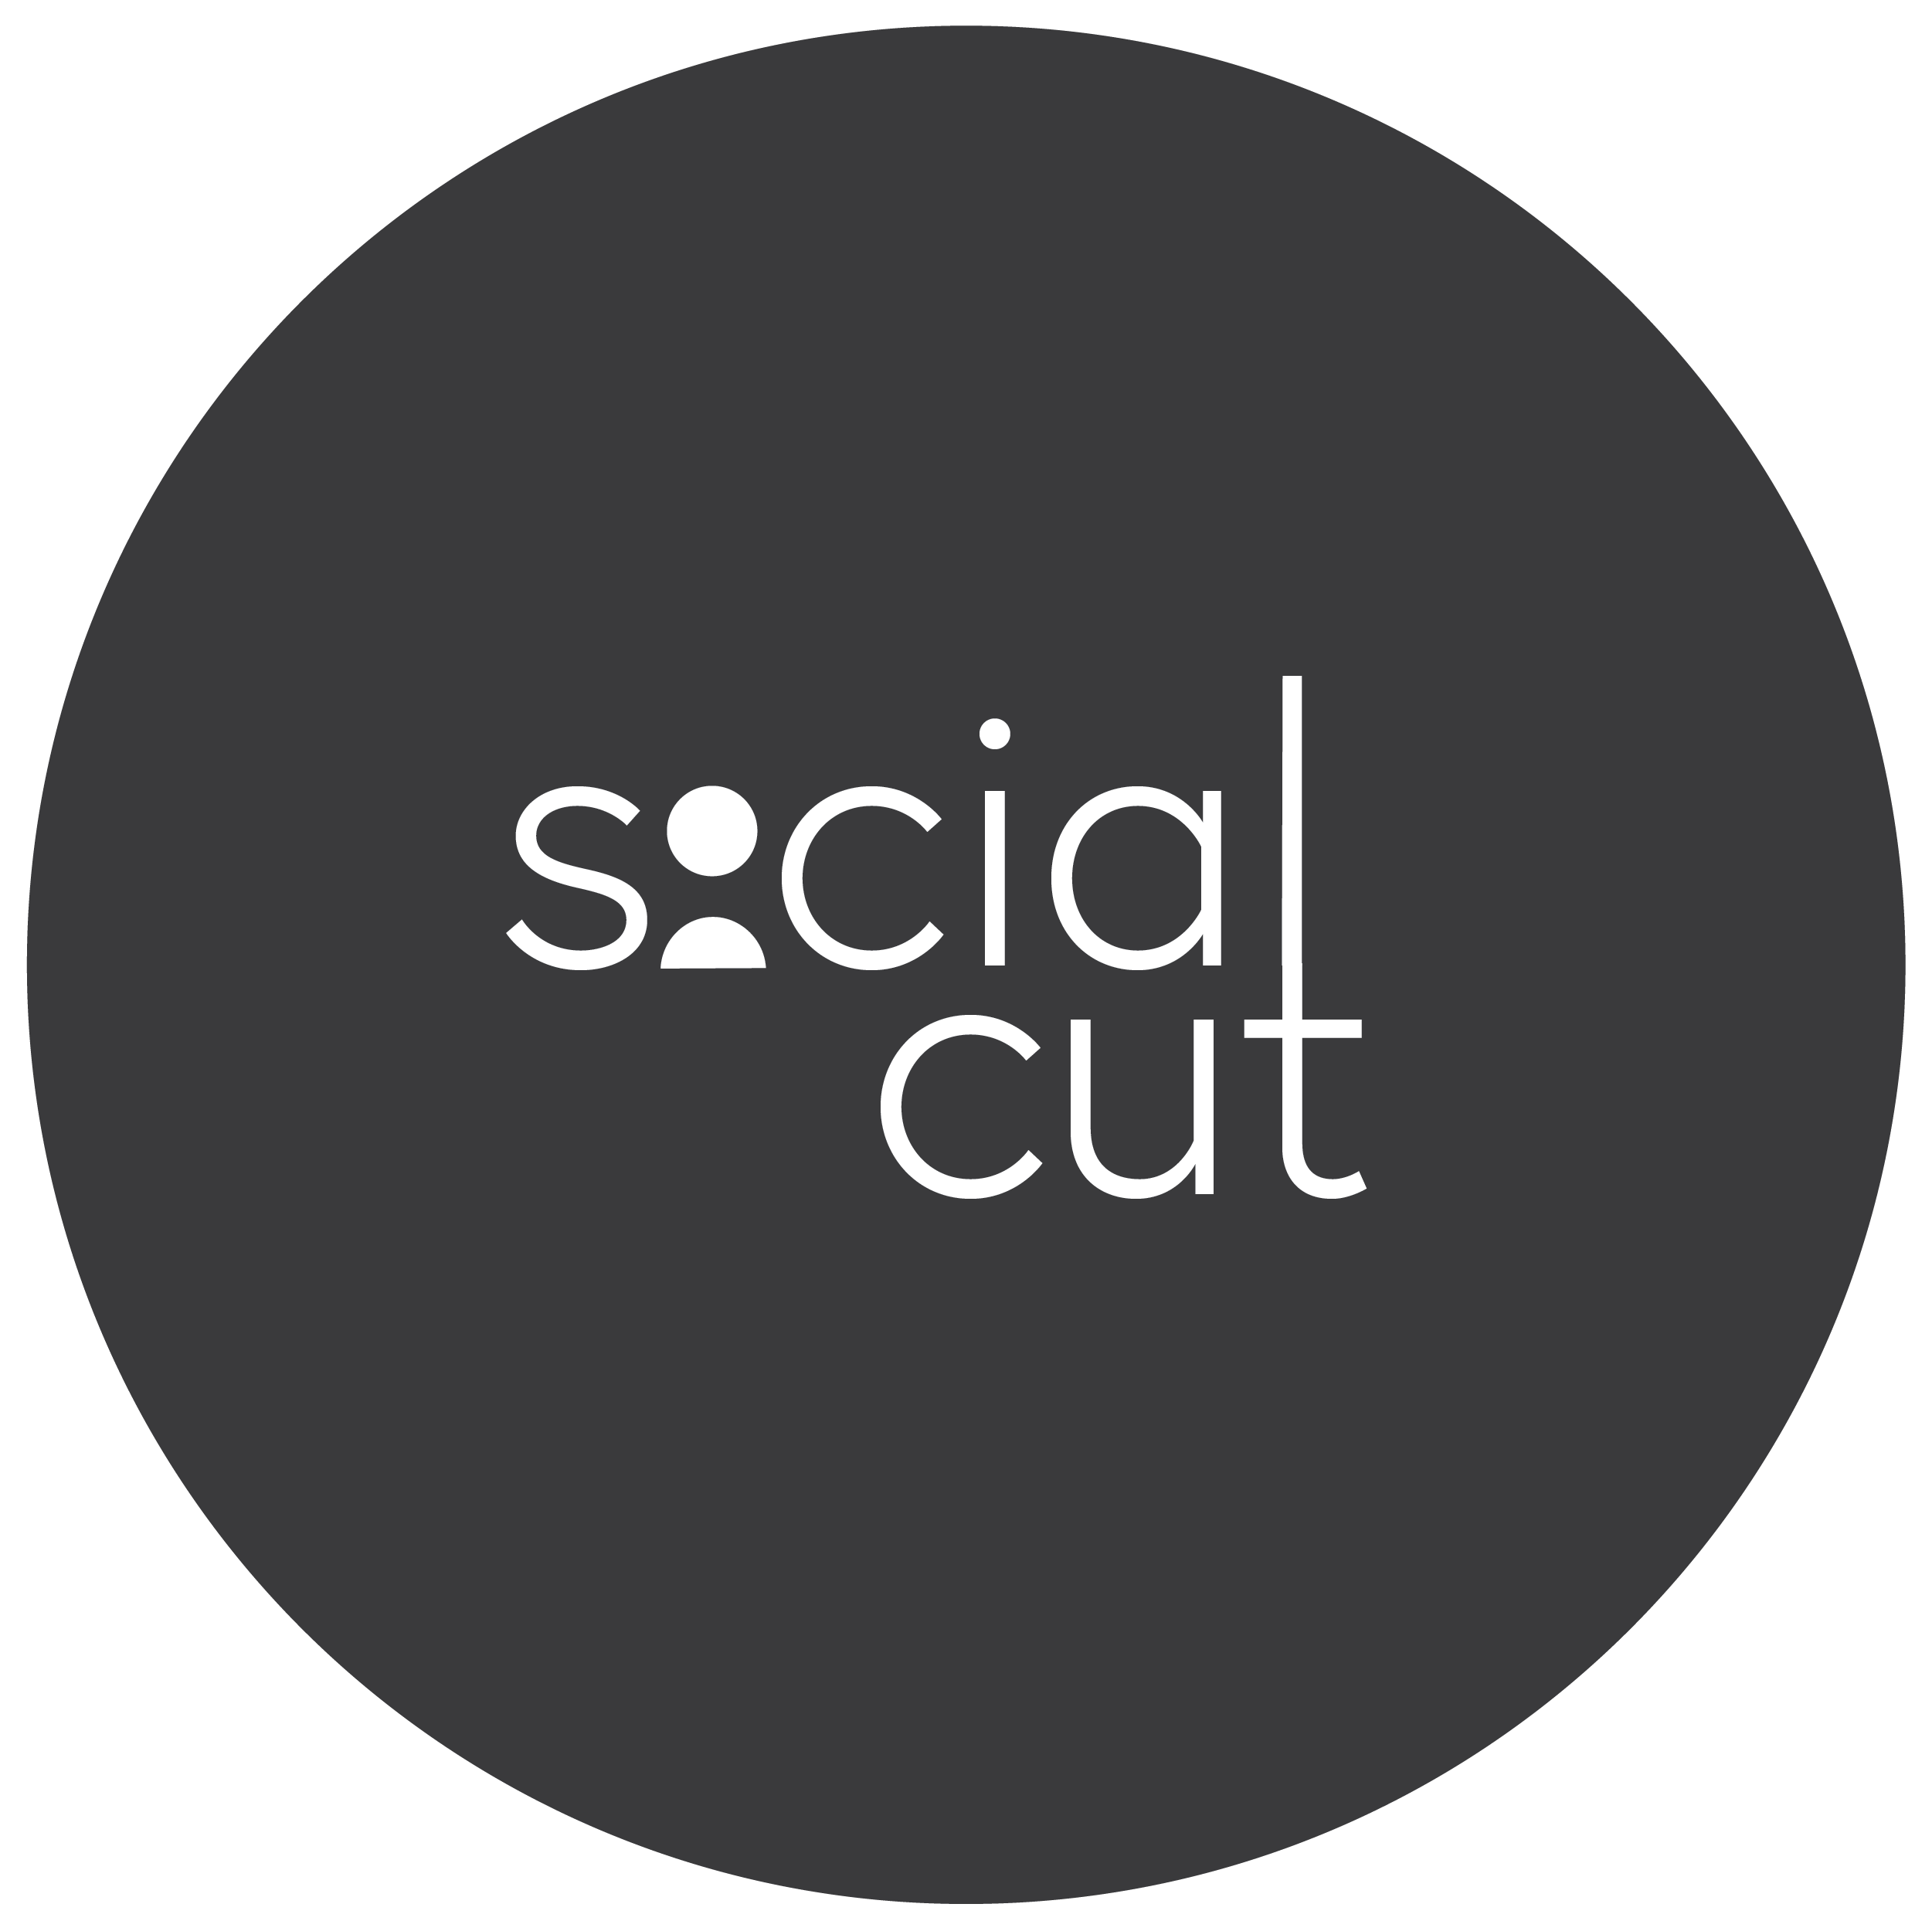 Go to Social Cut's profile